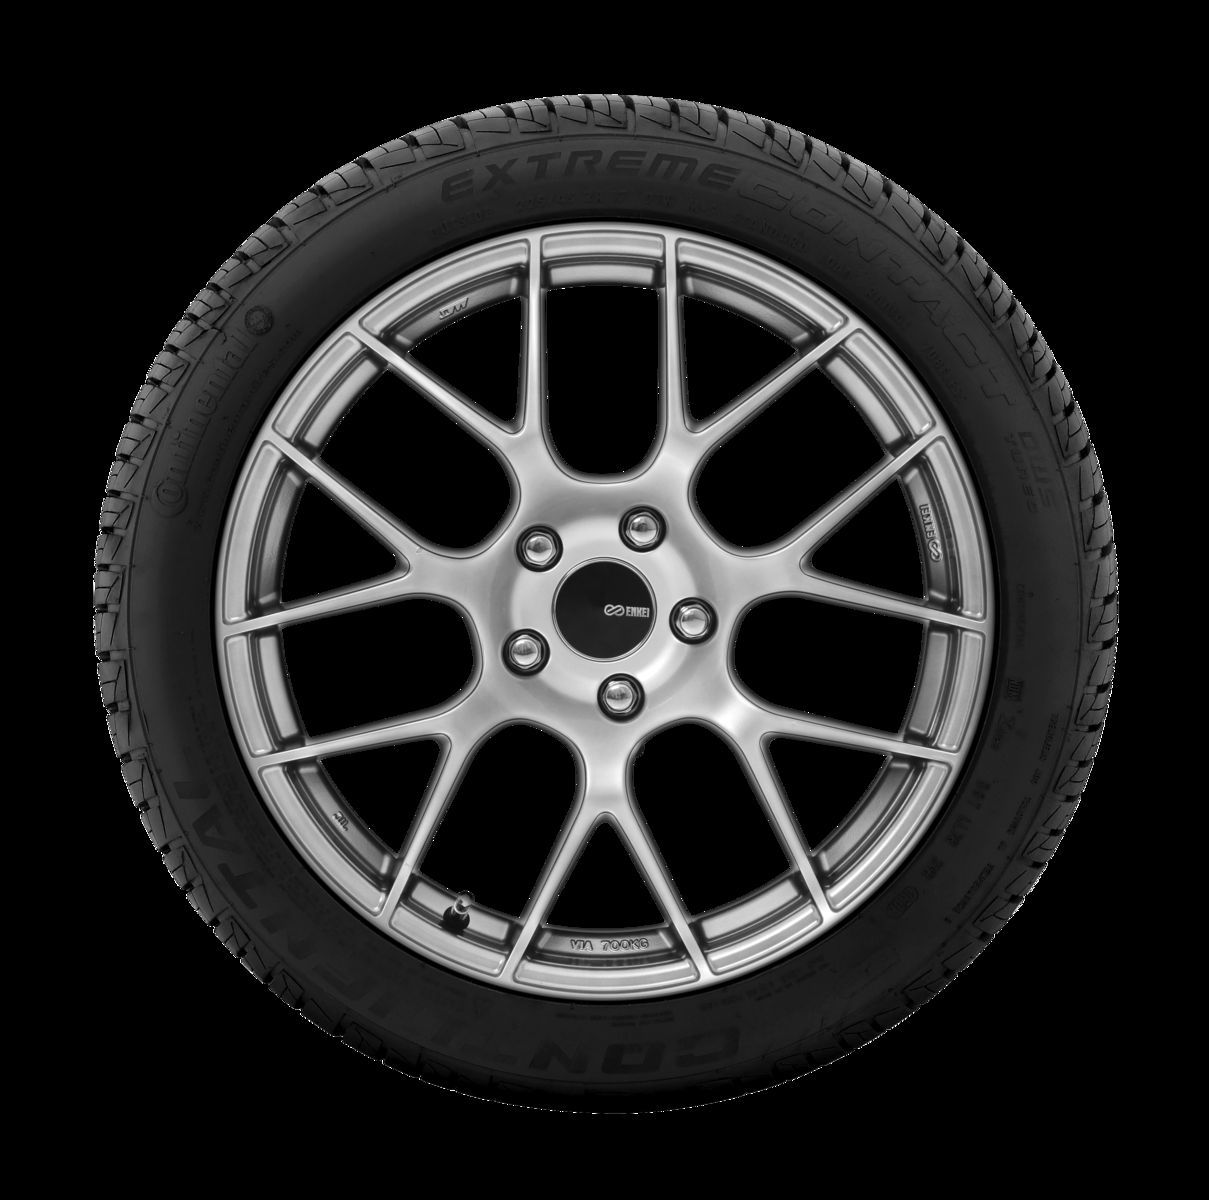 | ExtremeContactDWS Performance Continental Tire